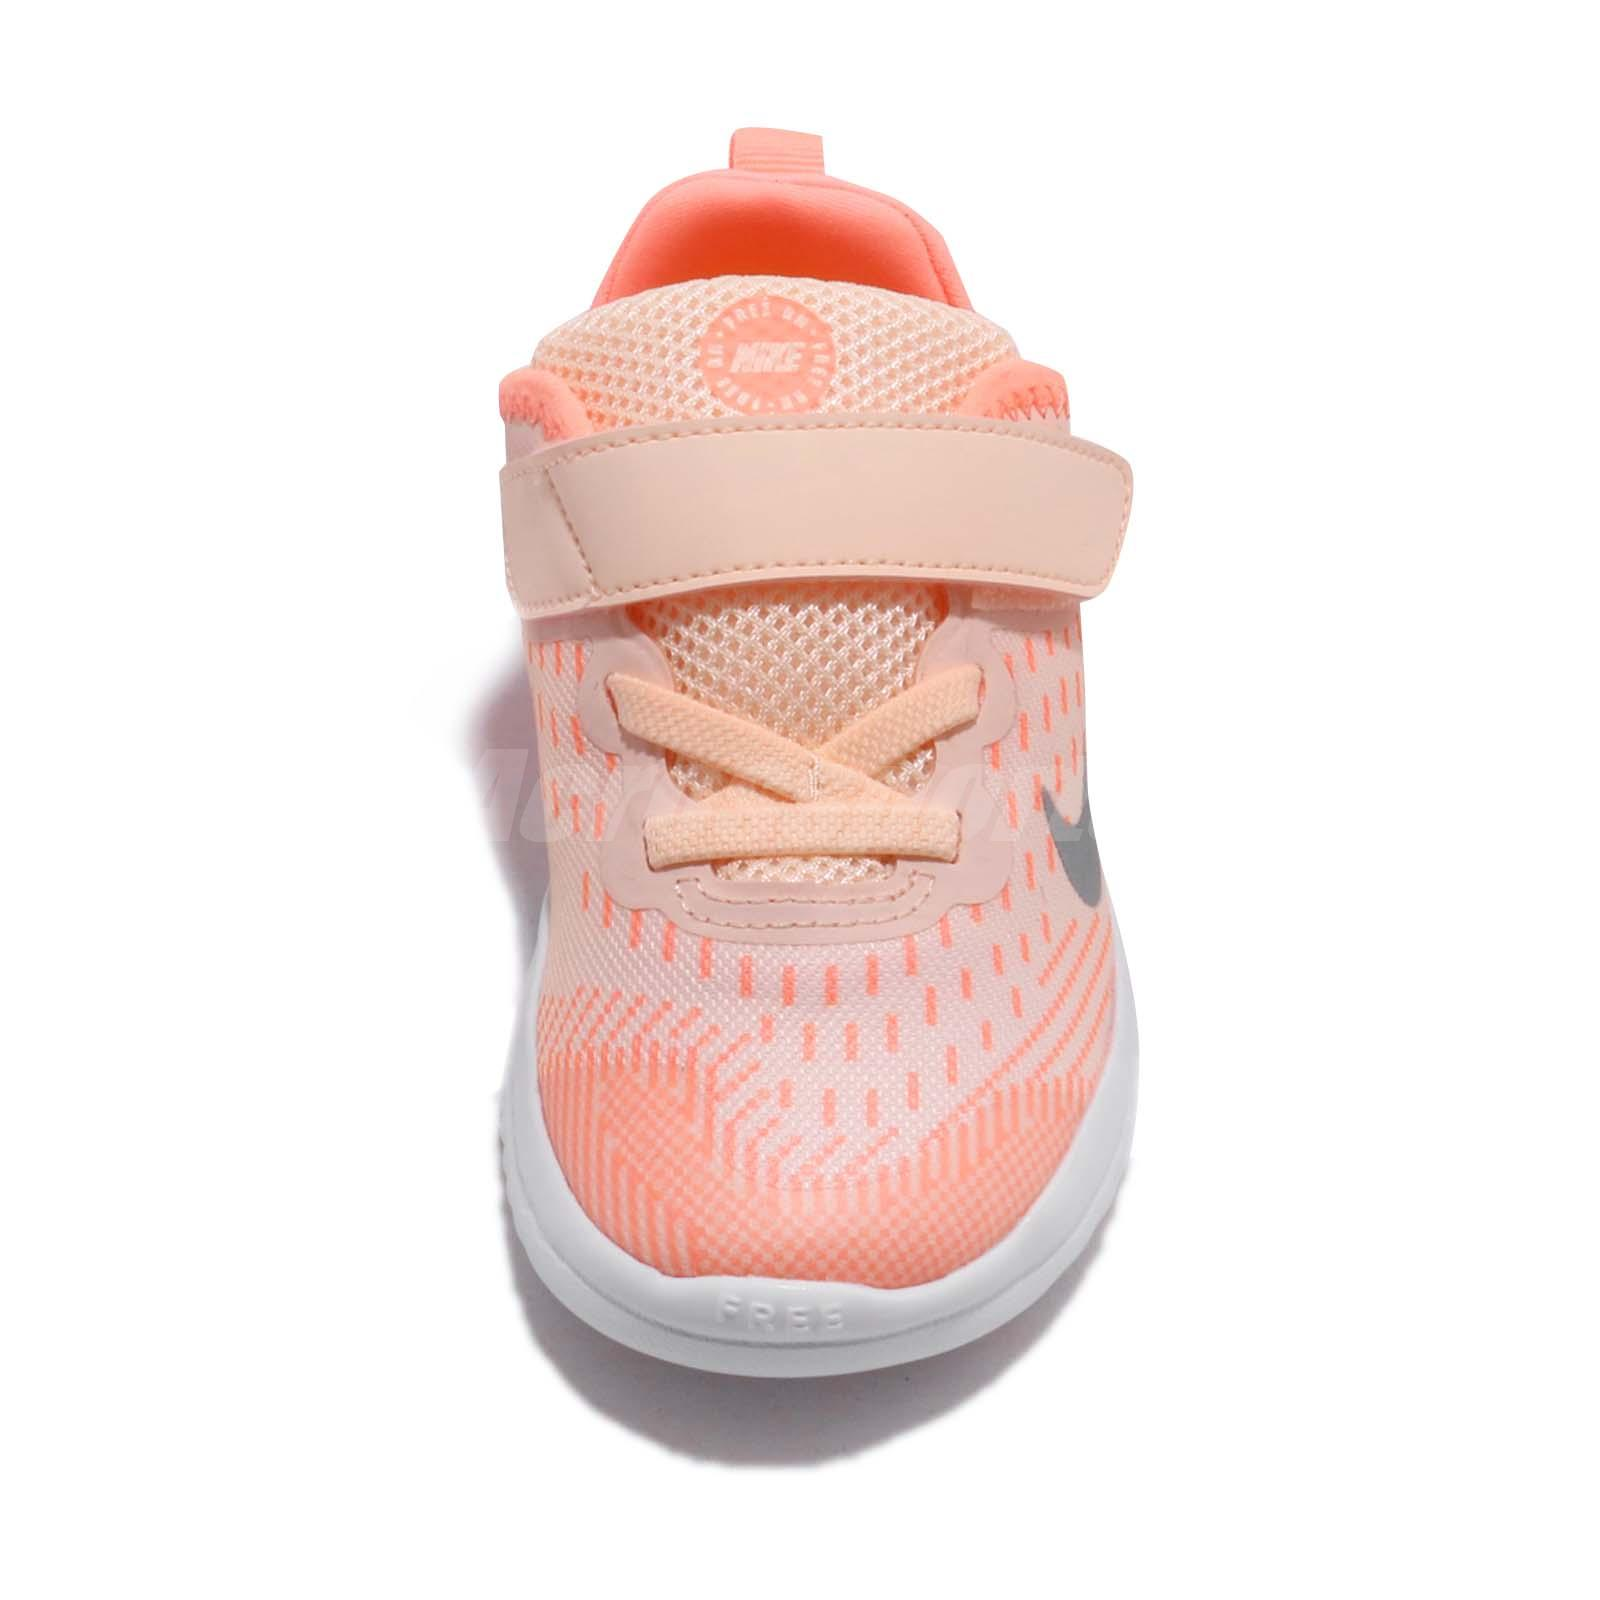 a9f378d33295 Nike Free RN 2018 TDV Crimson Tint Toddler Infant Baby Shoes ...